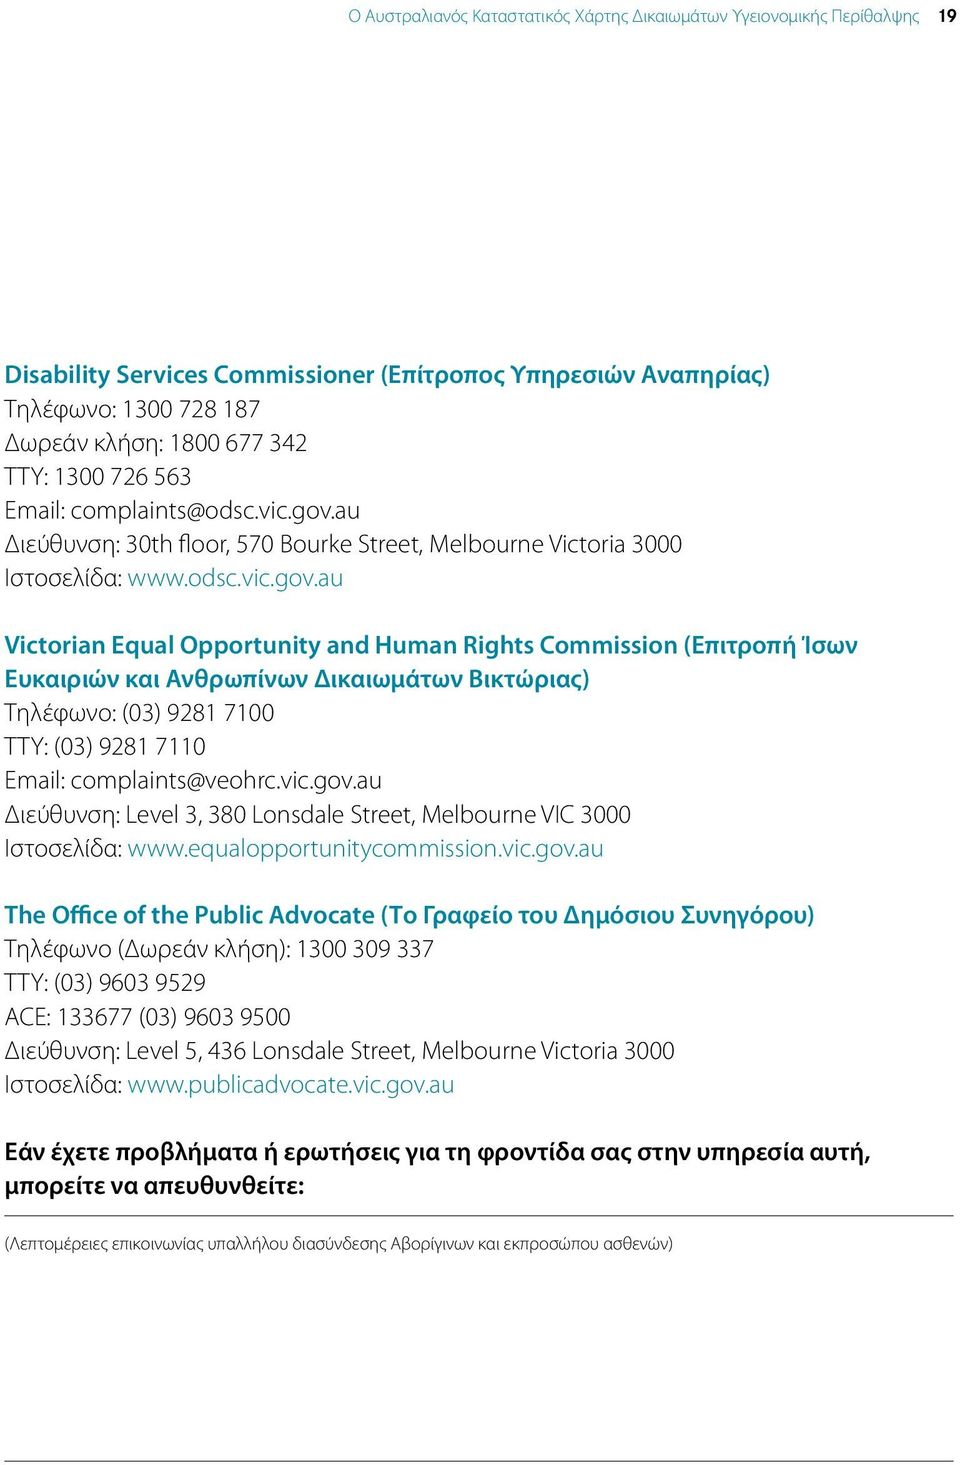 au Διεύθυνση: 30th floor, 570 Bourke Street, Melbourne Victoria 3000 Ιστοσελίδα: www.odsc.vic.gov.